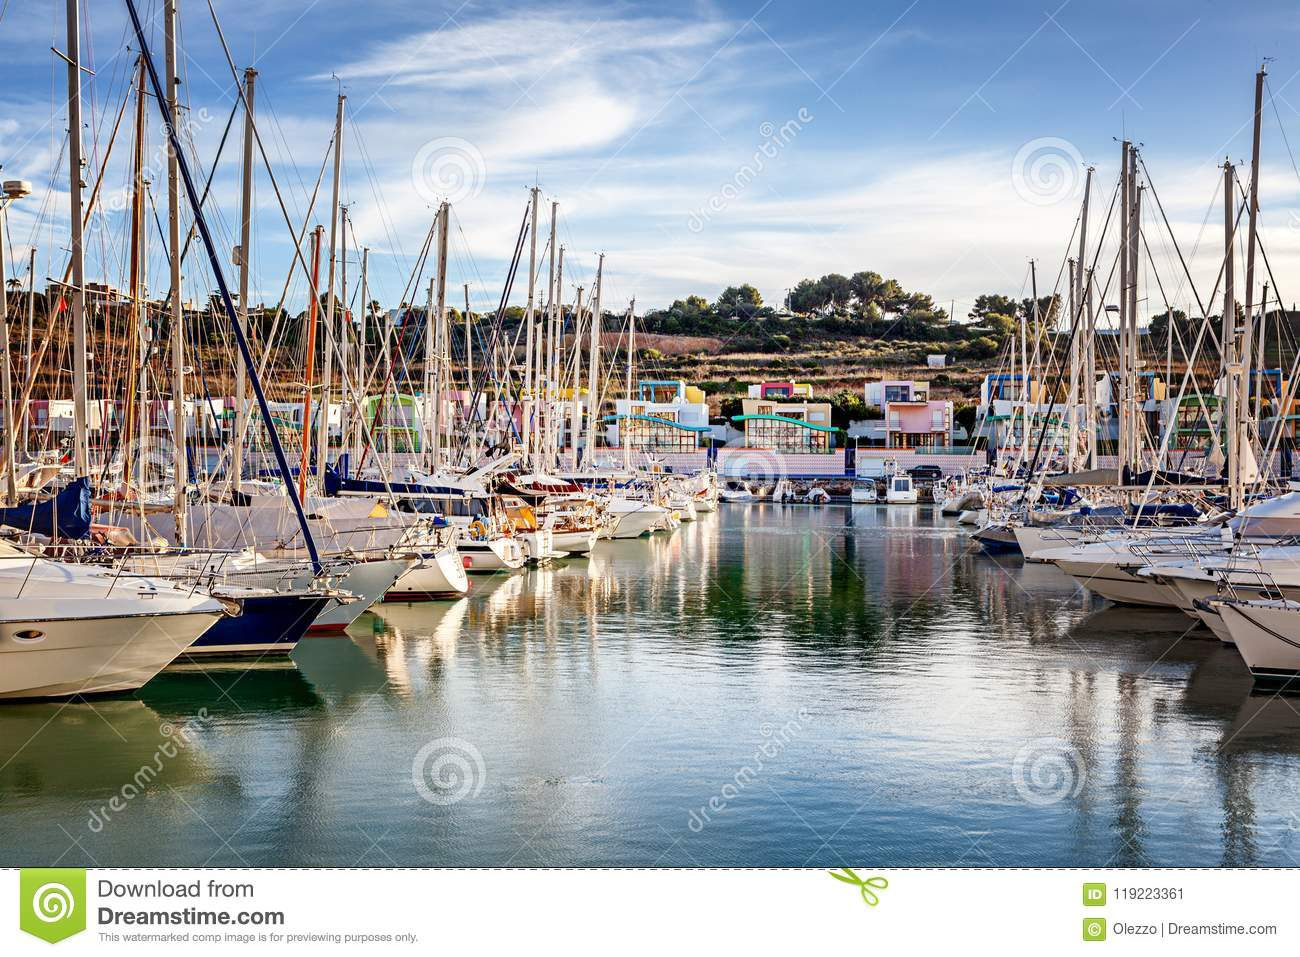 Port in the bay of Albufeira, Portugal, many boats and yachts in